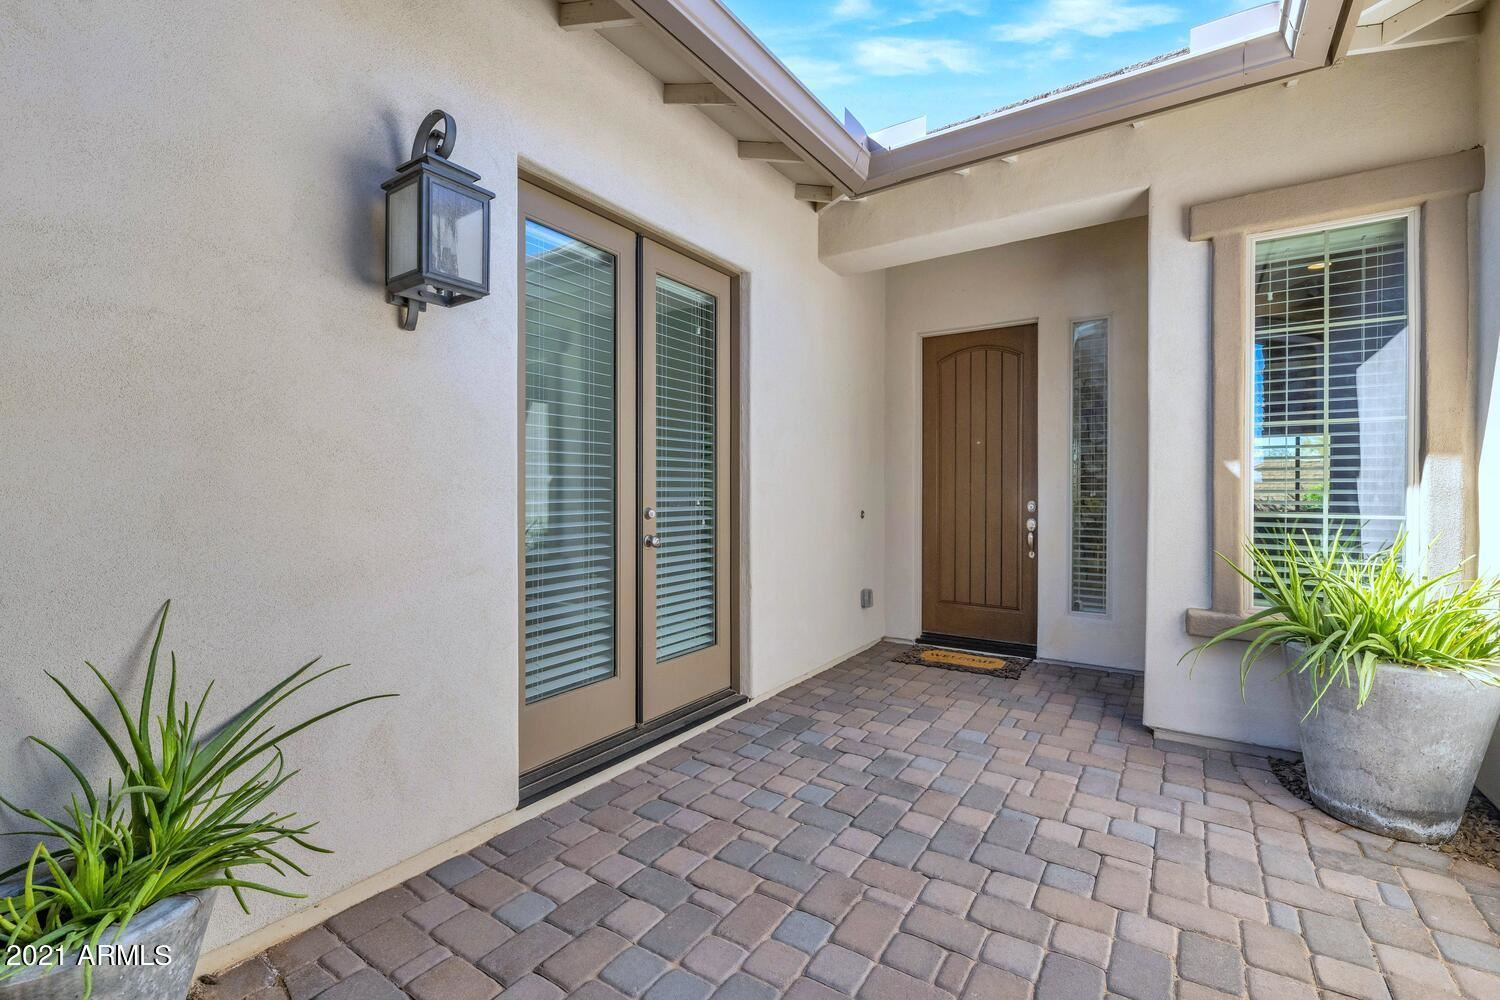 Photo of 31228 N 124TH Drive, Peoria, AZ 85383 (MLS # 6198954)